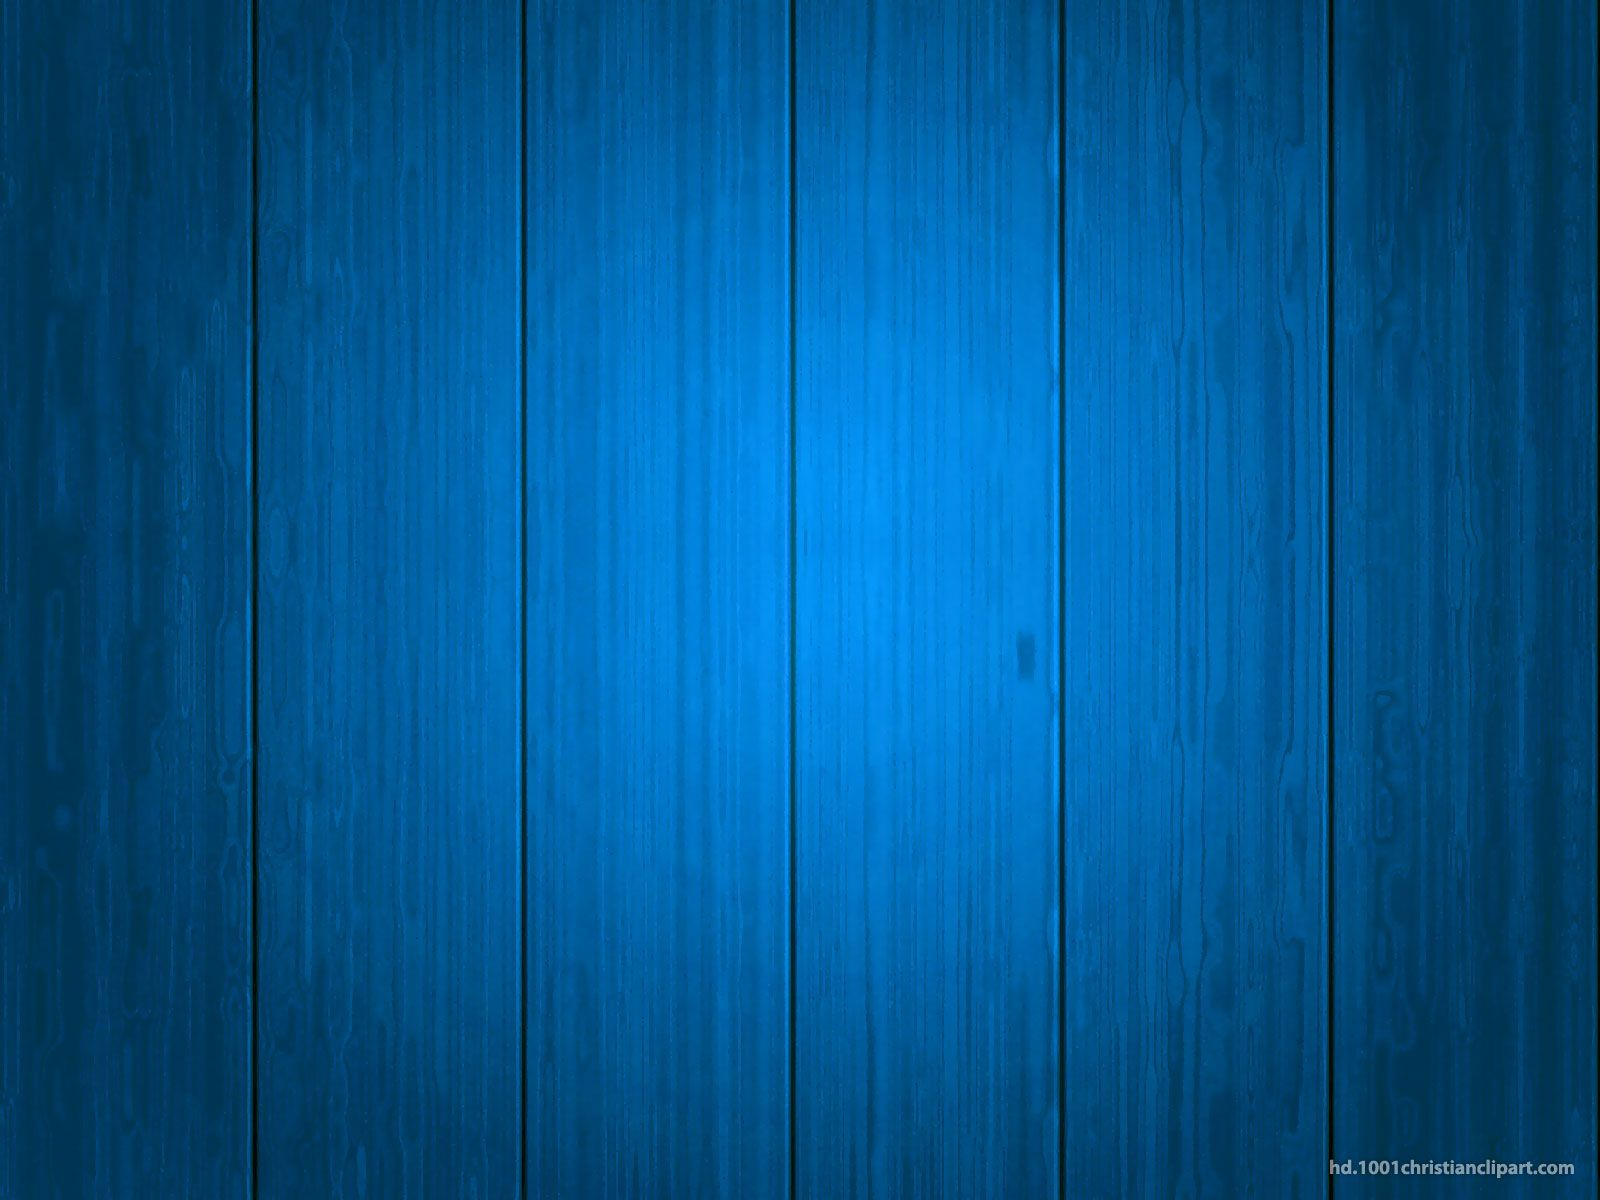 this is blue wood background that can be used for